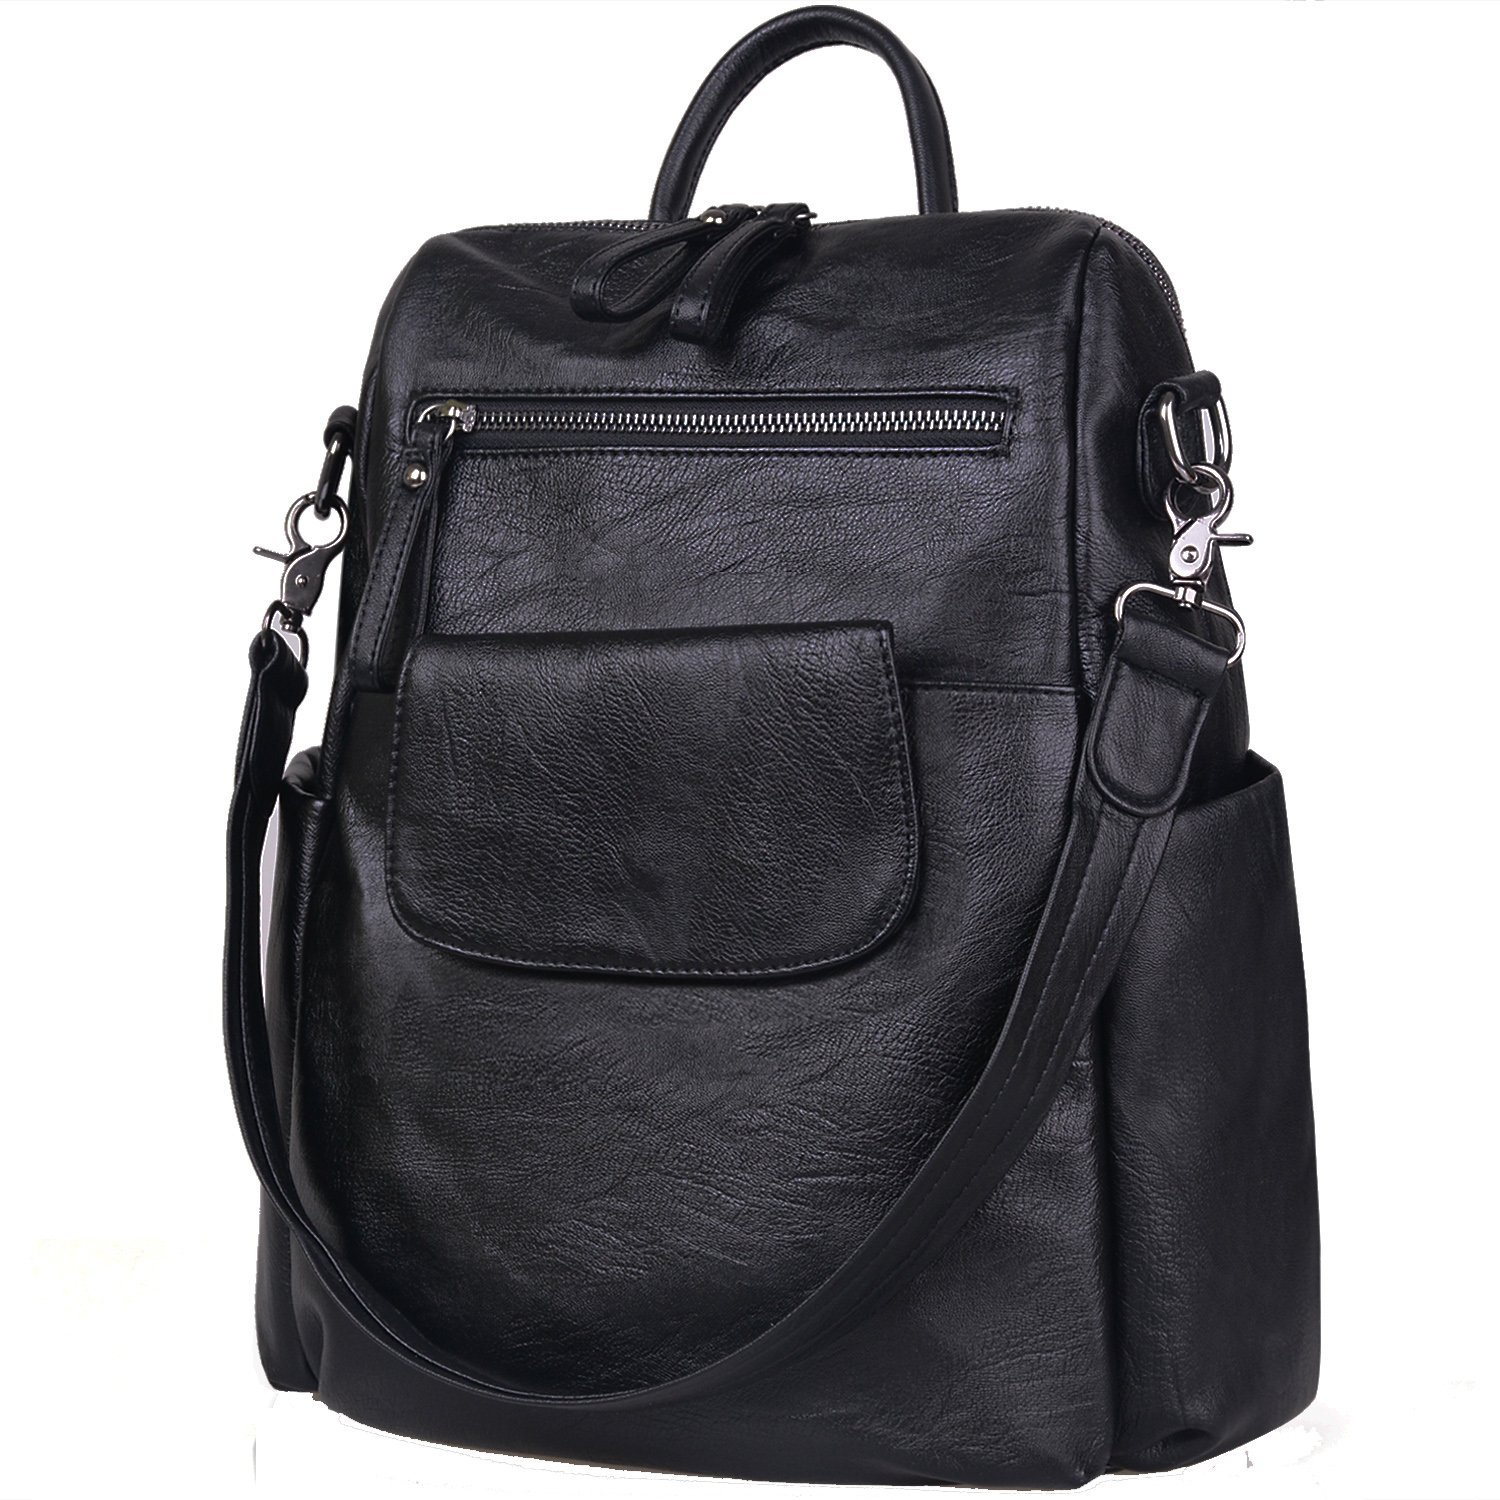 TFTP-Soft PU Leather Backpack  for Women Satchel Shoulder BagTFTP-Soft PU Leather Backpack  for Women Satchel Shoulder Bag